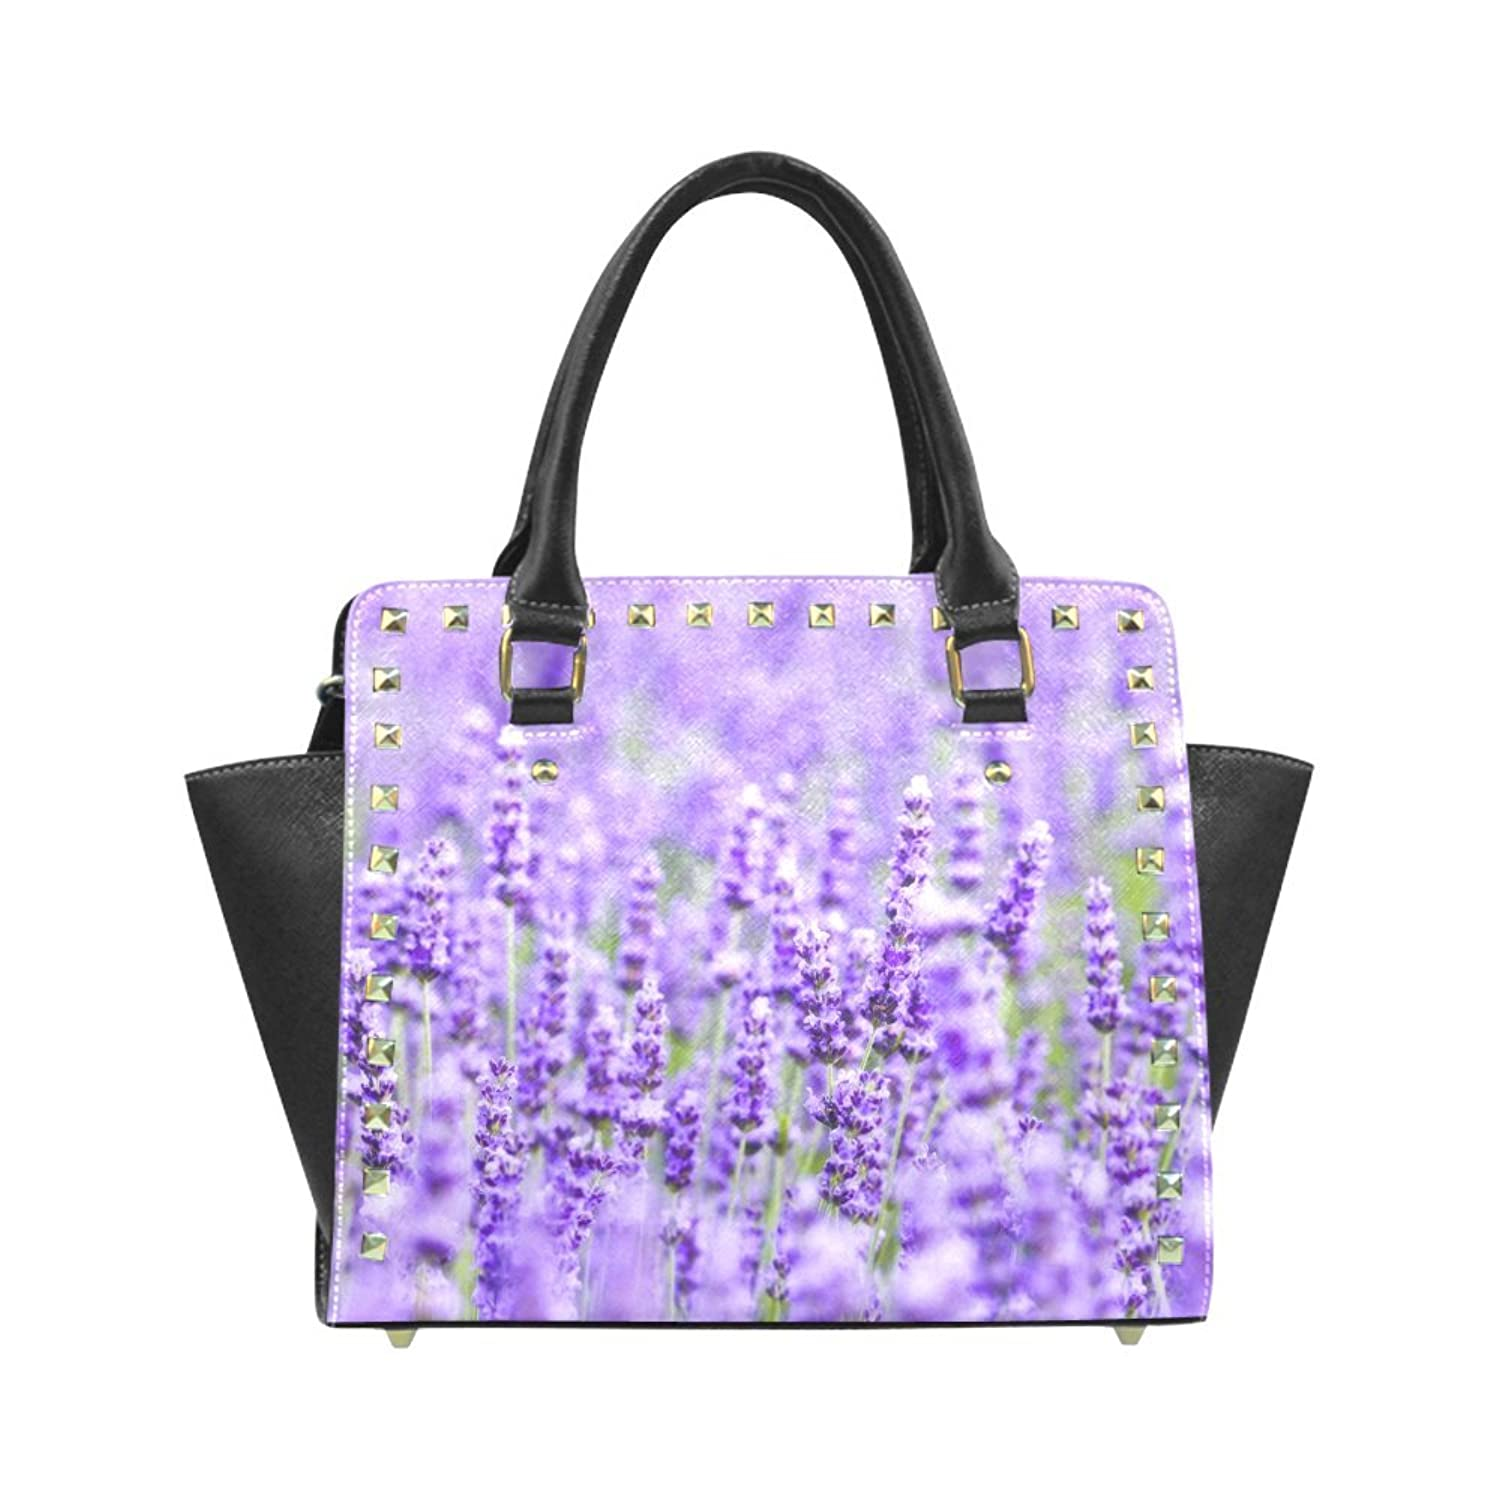 InterestPrint Custom Lavender Flowers Rivet Shoulder Handbag/Tote Bag/Travel Bag for...